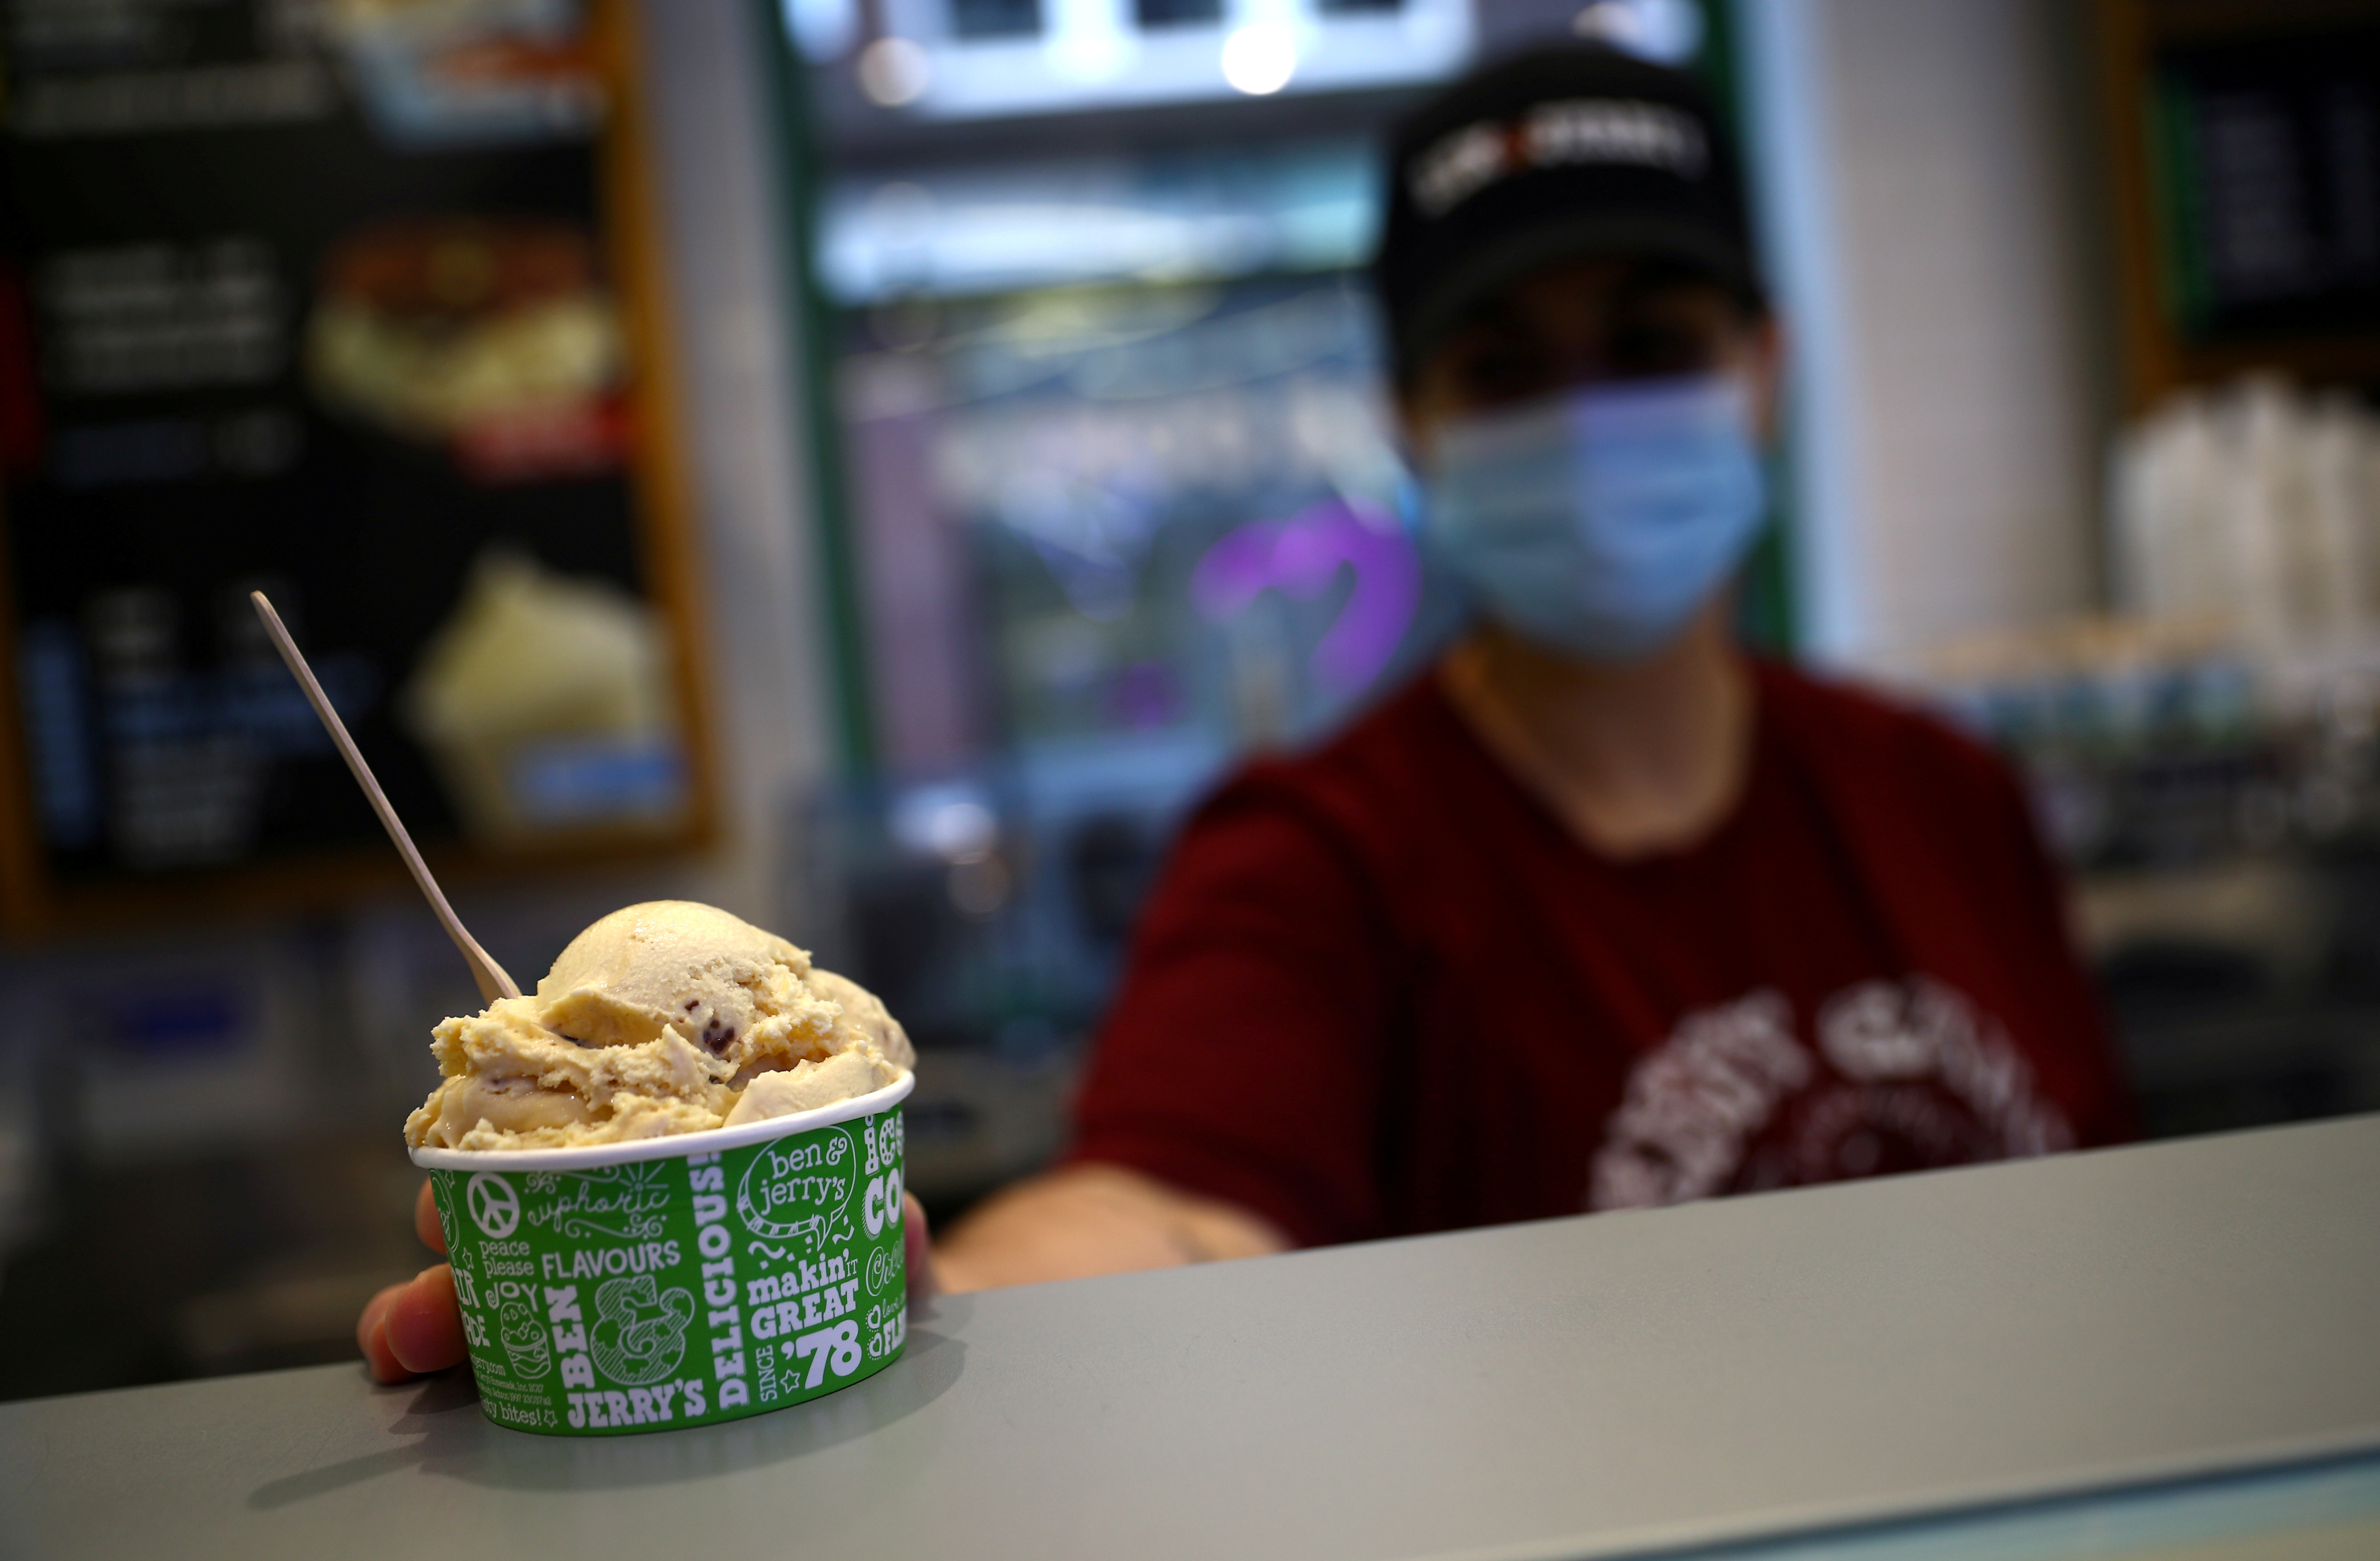 An ice cream of Ben & Jerry's, a Unilever brand, is seen at their shop in London, Britain, October 5, 2020. REUTERS/Hannah McKay/Files